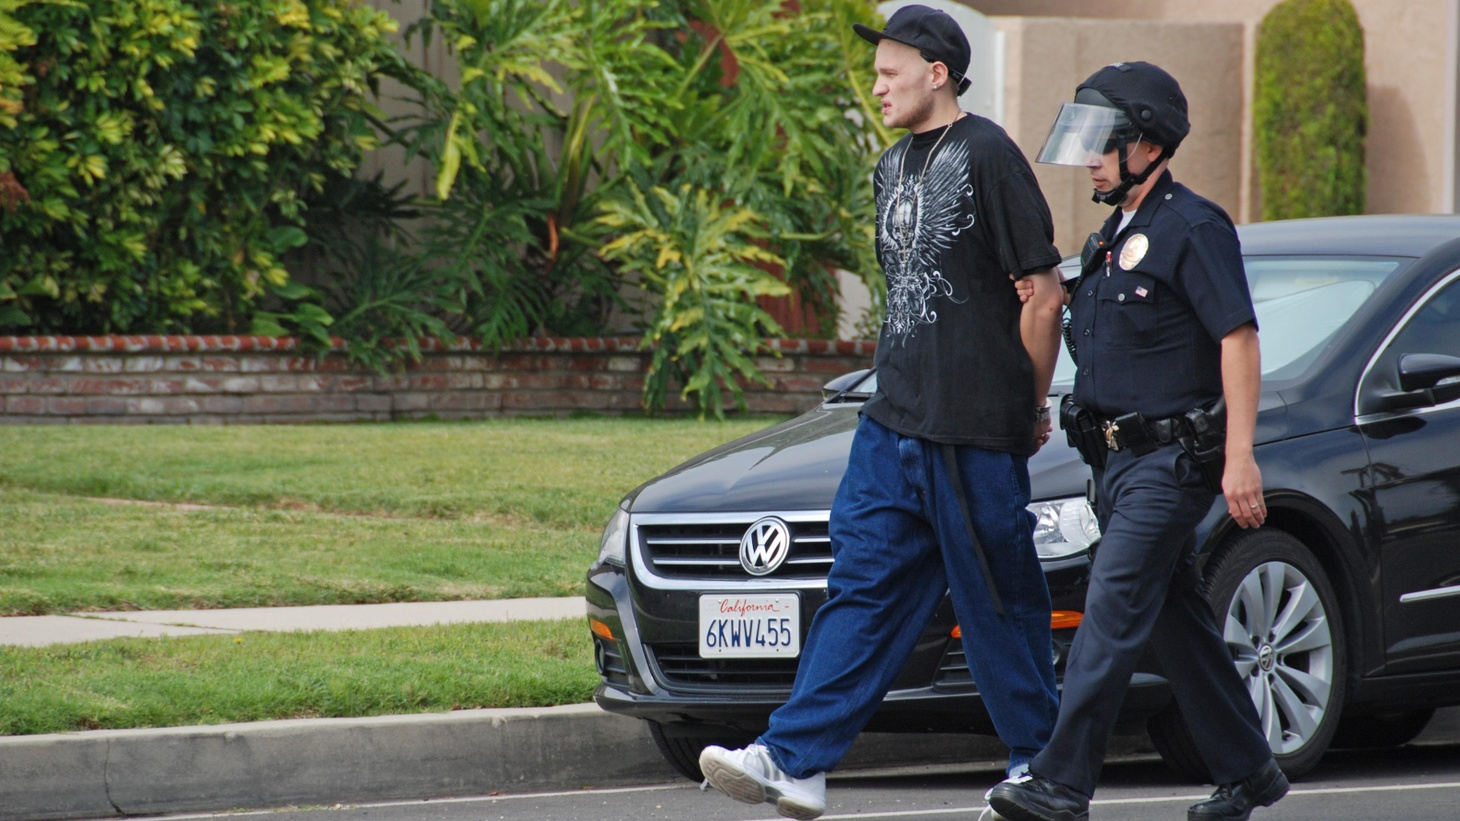 Some 200,000 Californians are on a database that tracks suspected gang members. How does the law protect the rights of people who are wrongly listed?